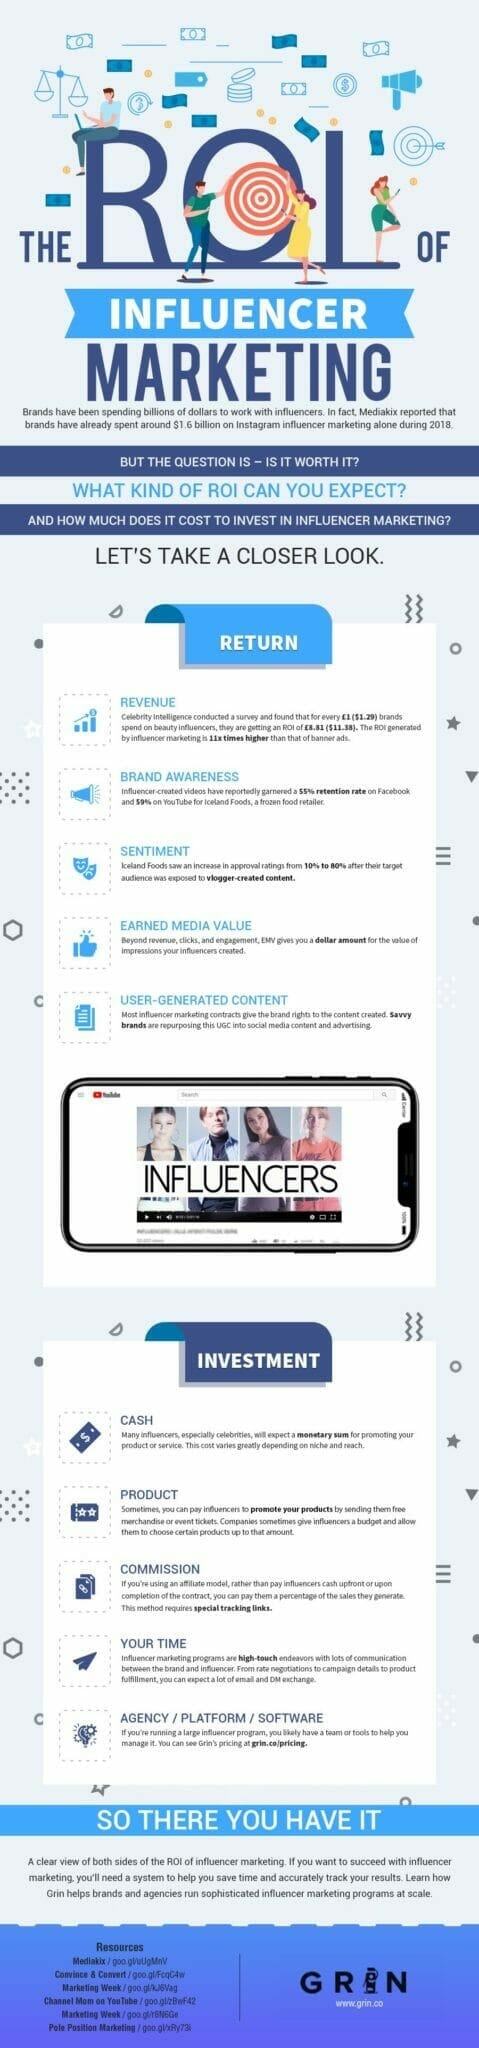 ROI-of-Influencer-Marketing-infographic-1